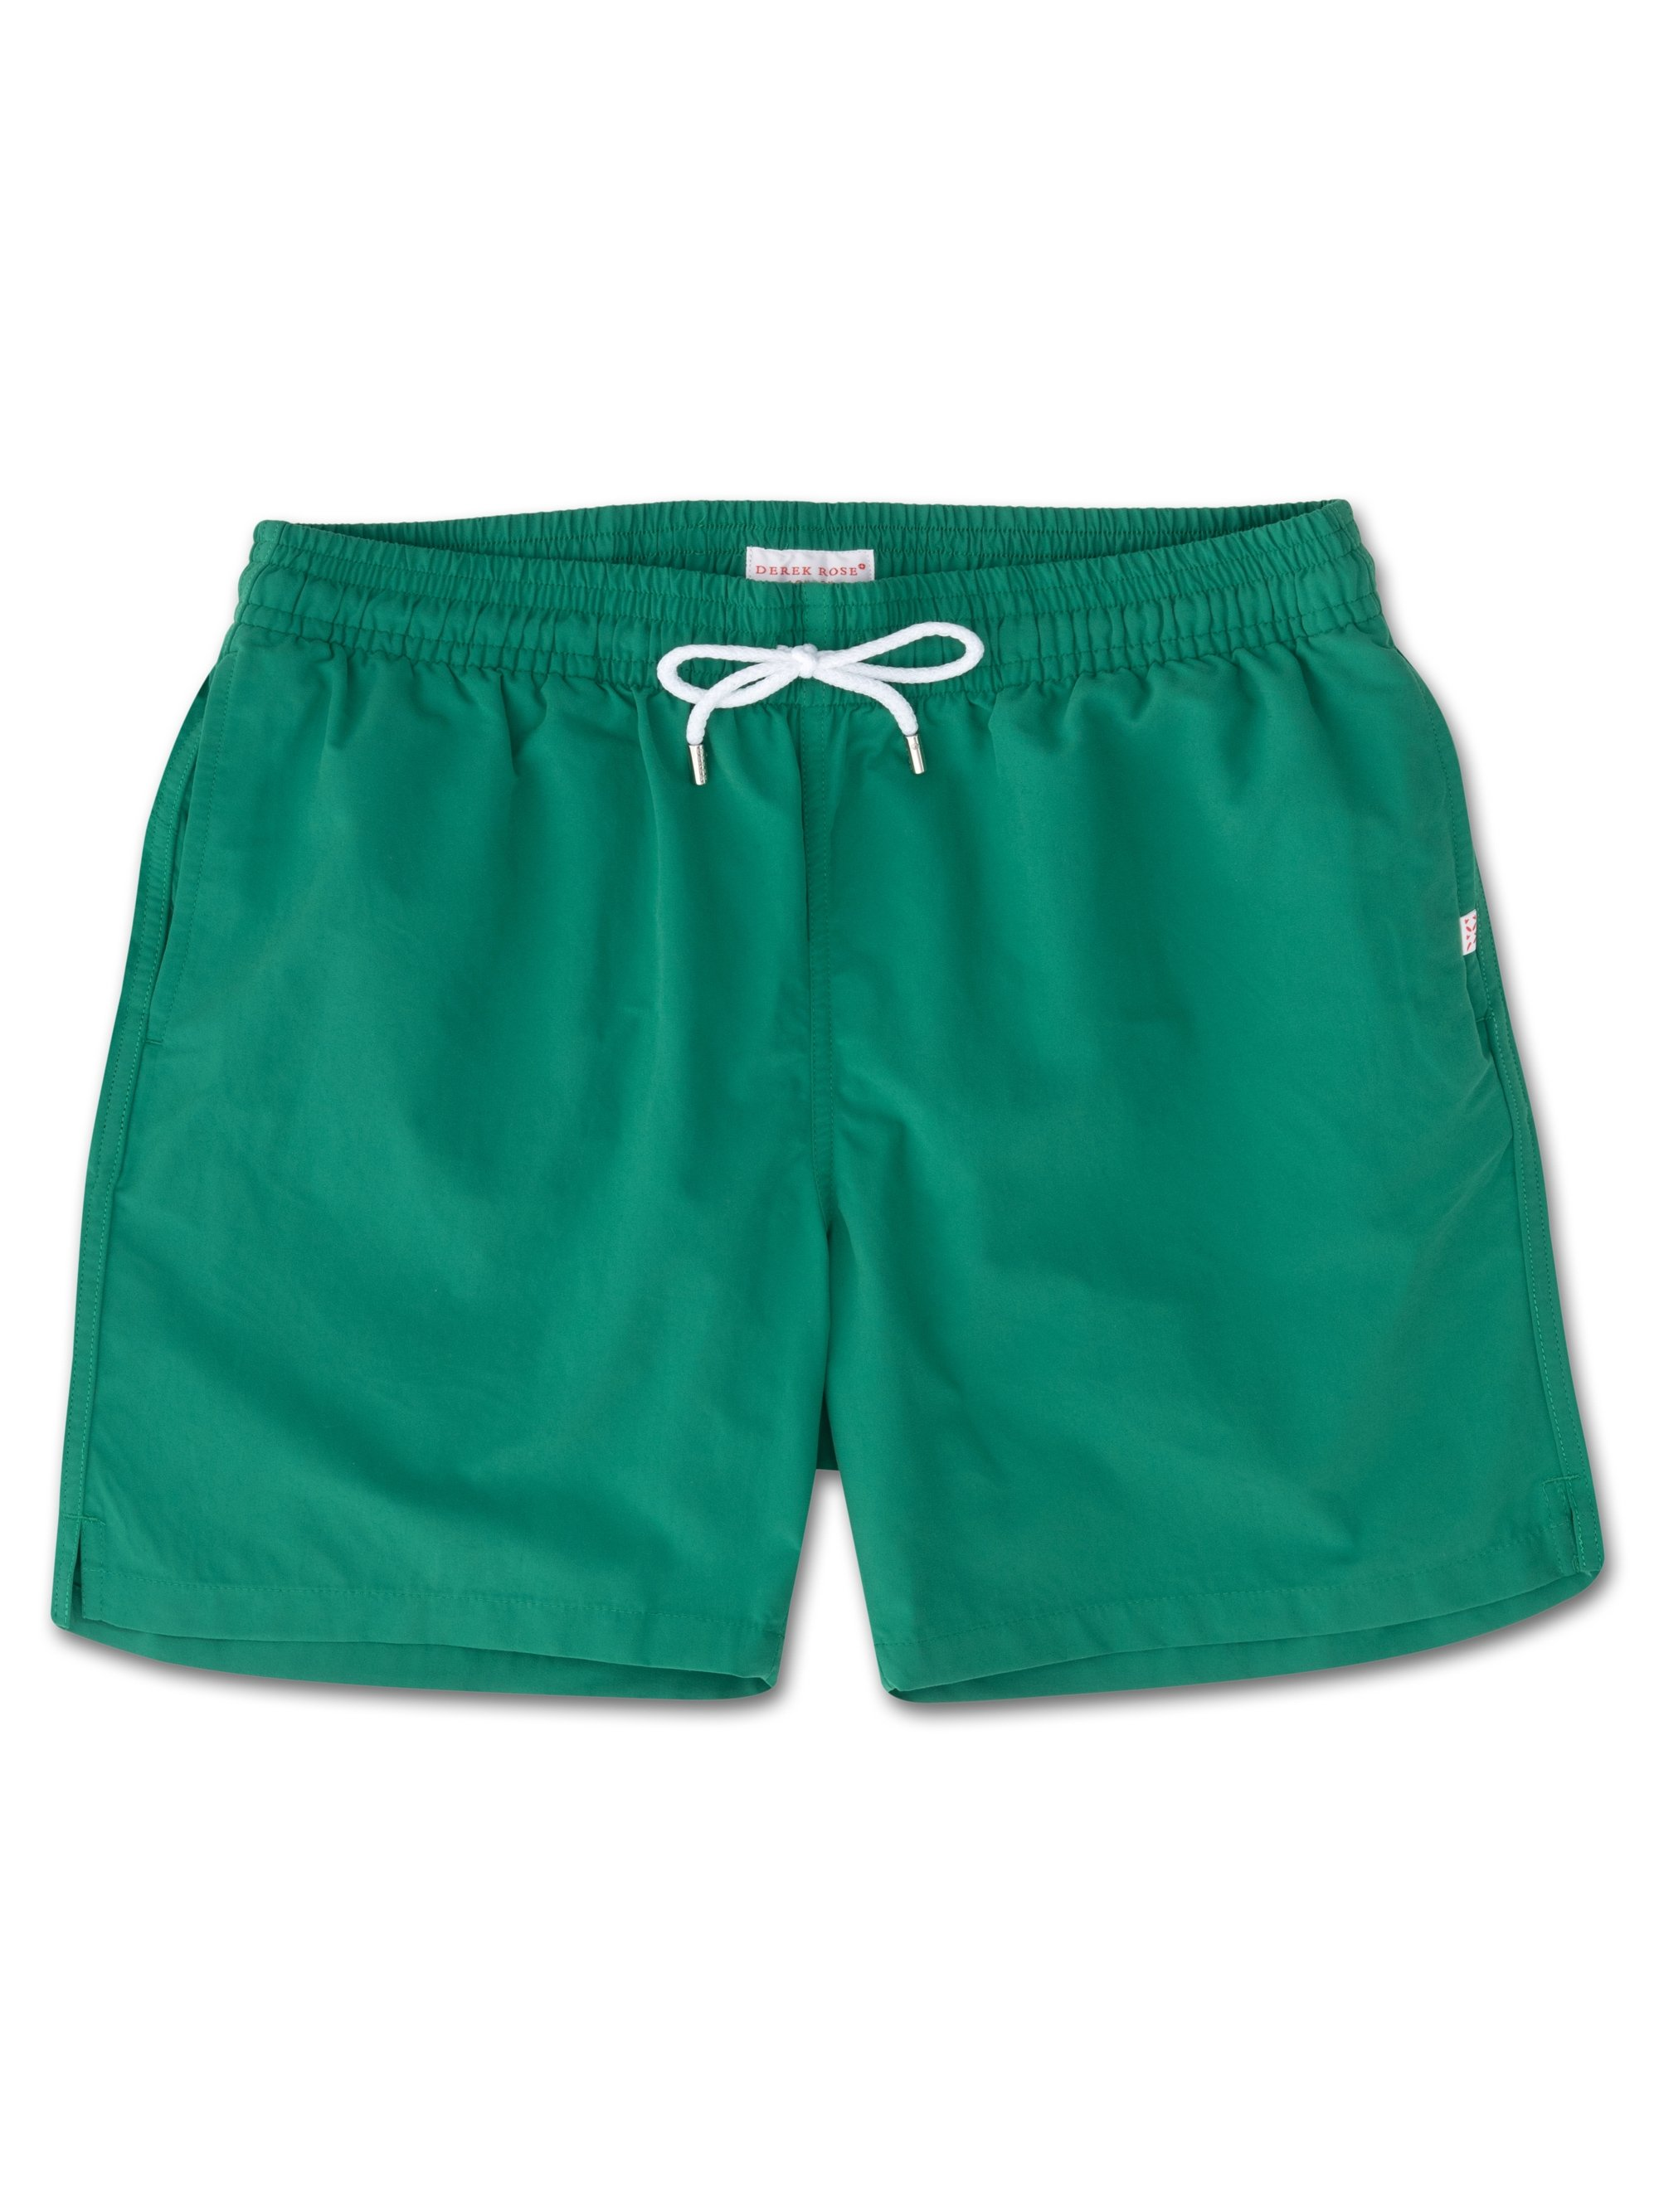 Men's Classic Fit Swim Shorts Aruba Green